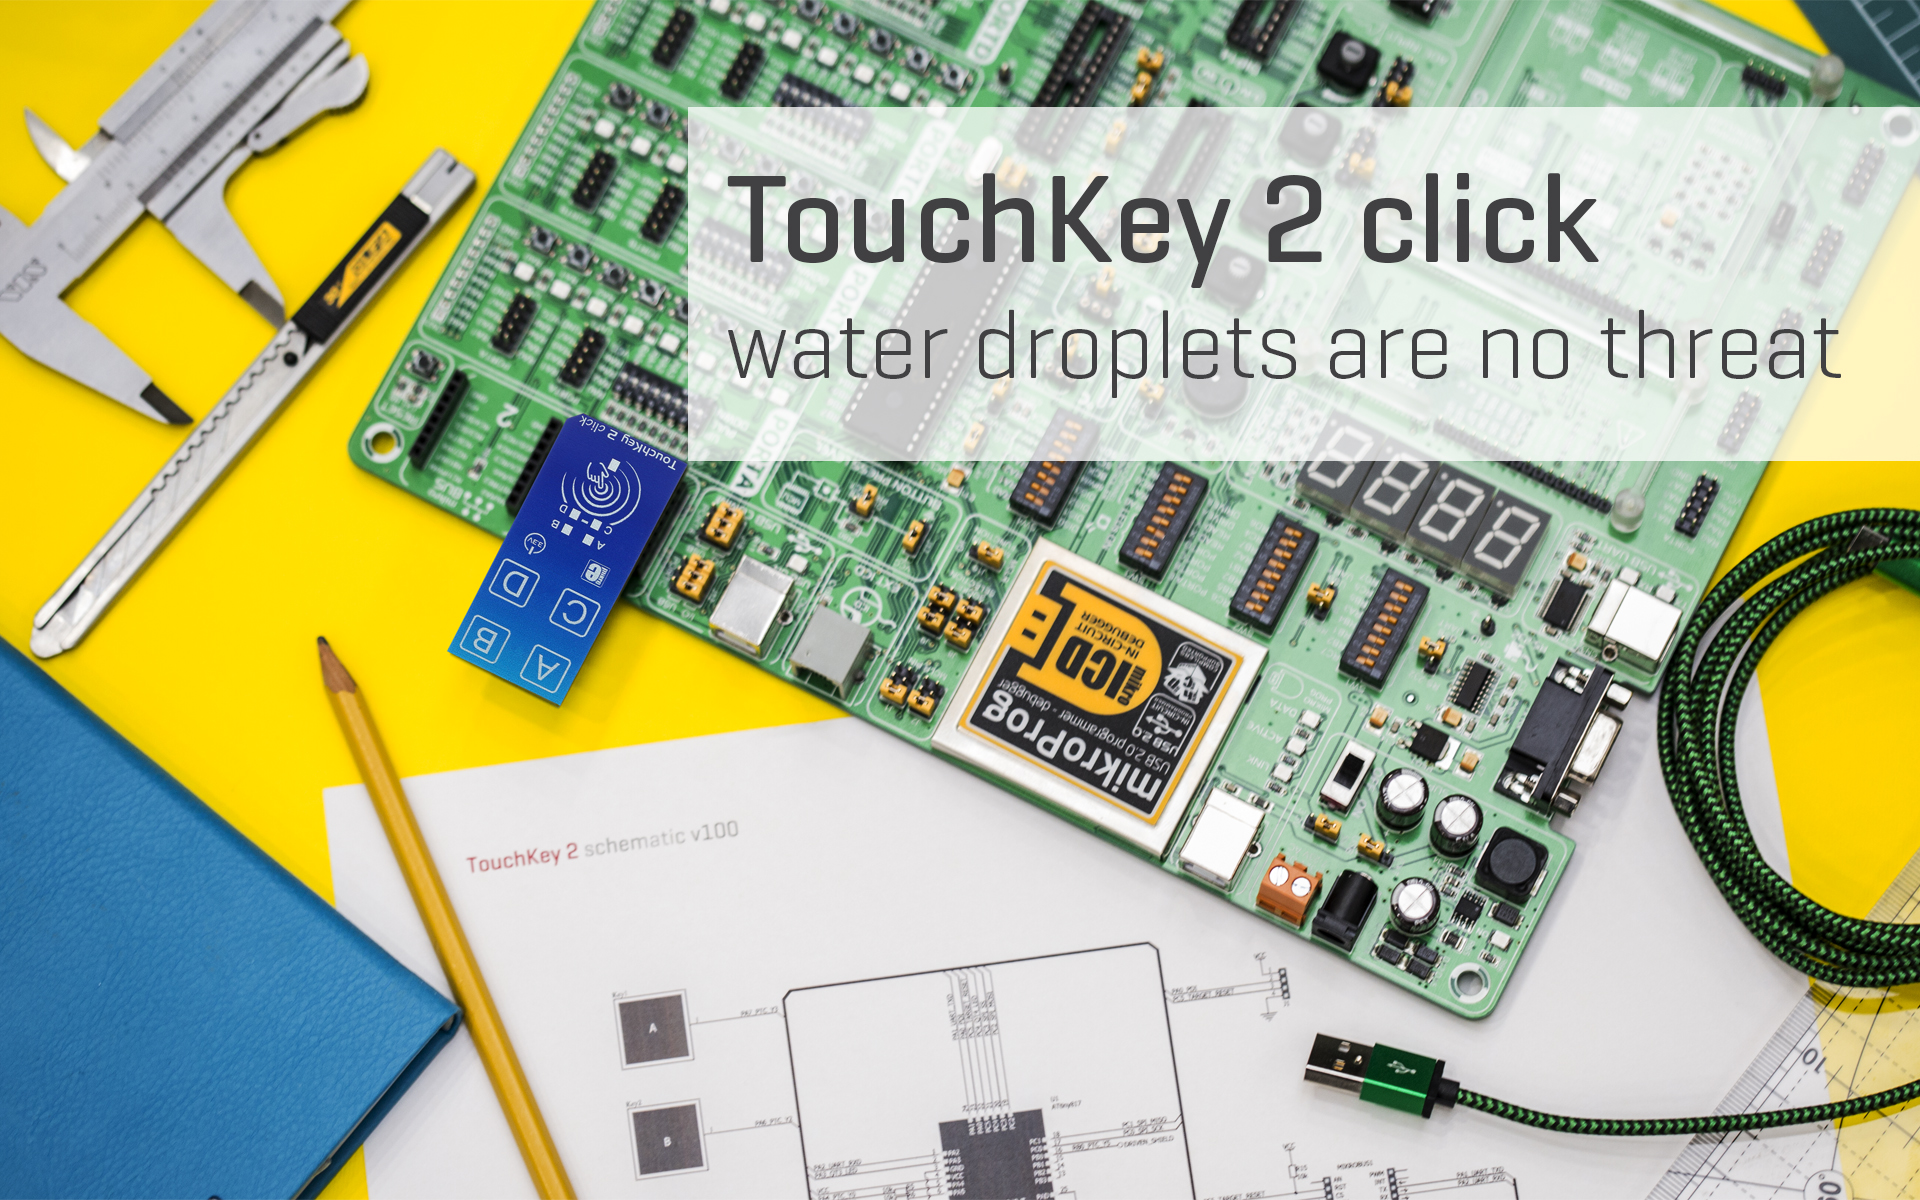 TouchKey 2 click - water droplets are no threat